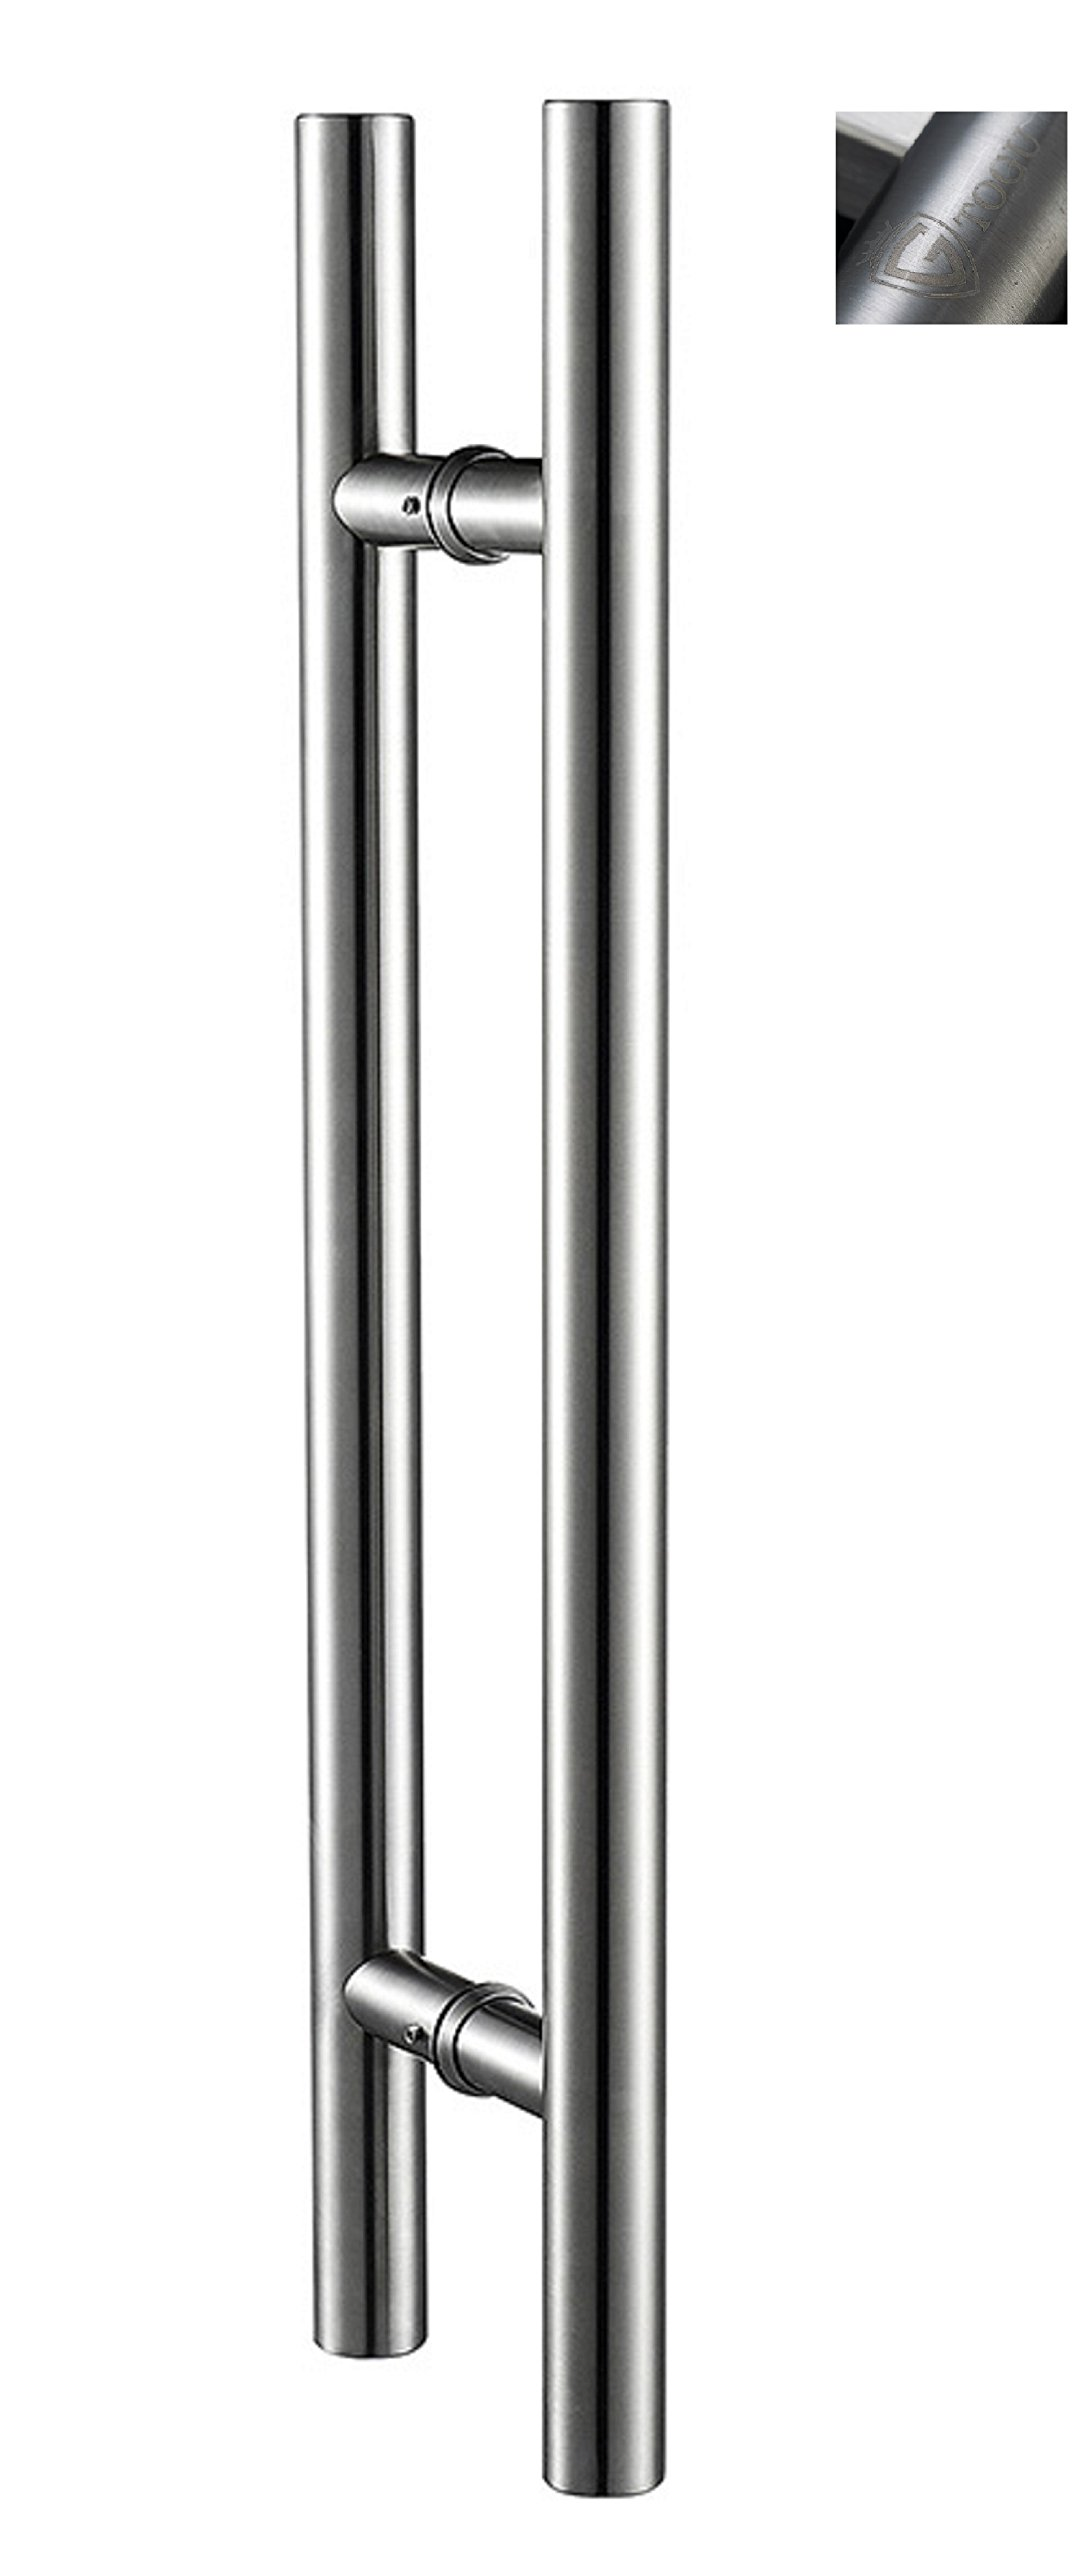 TOGU TG-6012 71 inches Solid Standoffs Heavy-duty Commercial Grade-304 Stainless Steel Push Pull Door Handle/Barn Door Pull Handle/ Glass Pulls , Full Brushed Stainless Steel Finish